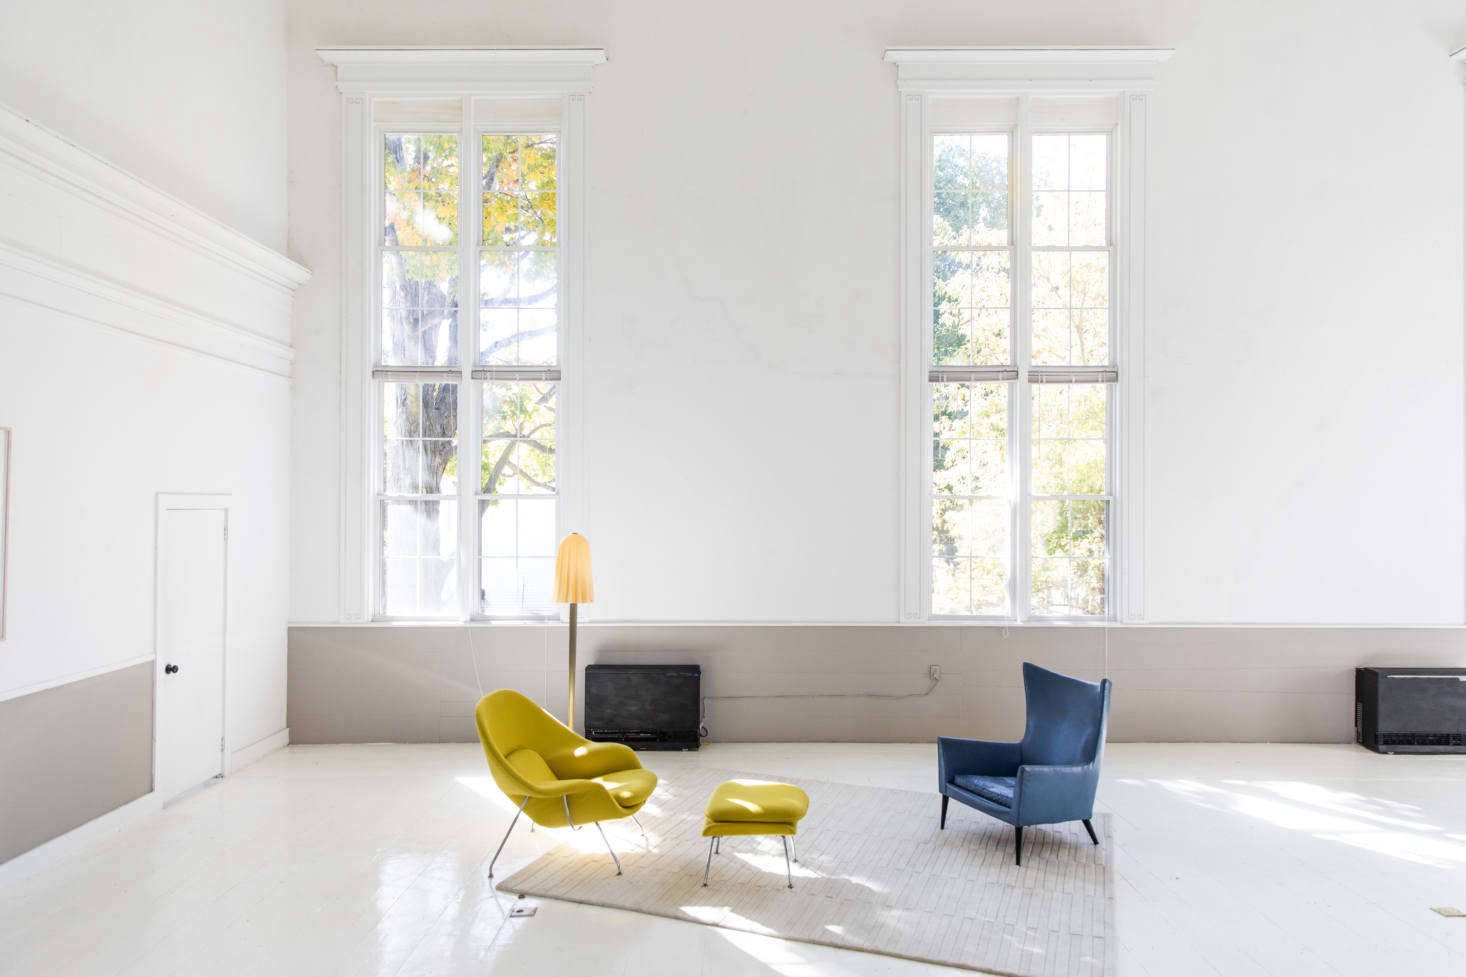 """The deconstructed living area is set apart by a rug, and fitted with an Eero Saarinen Womb Chair (""""reupholstered in vintage Knoll fabric to retain authenticity,"""" McNeil says) and a vintage blue Danish chair. The wonky floor lamp is an Italian Murano glass design from the 1950s."""